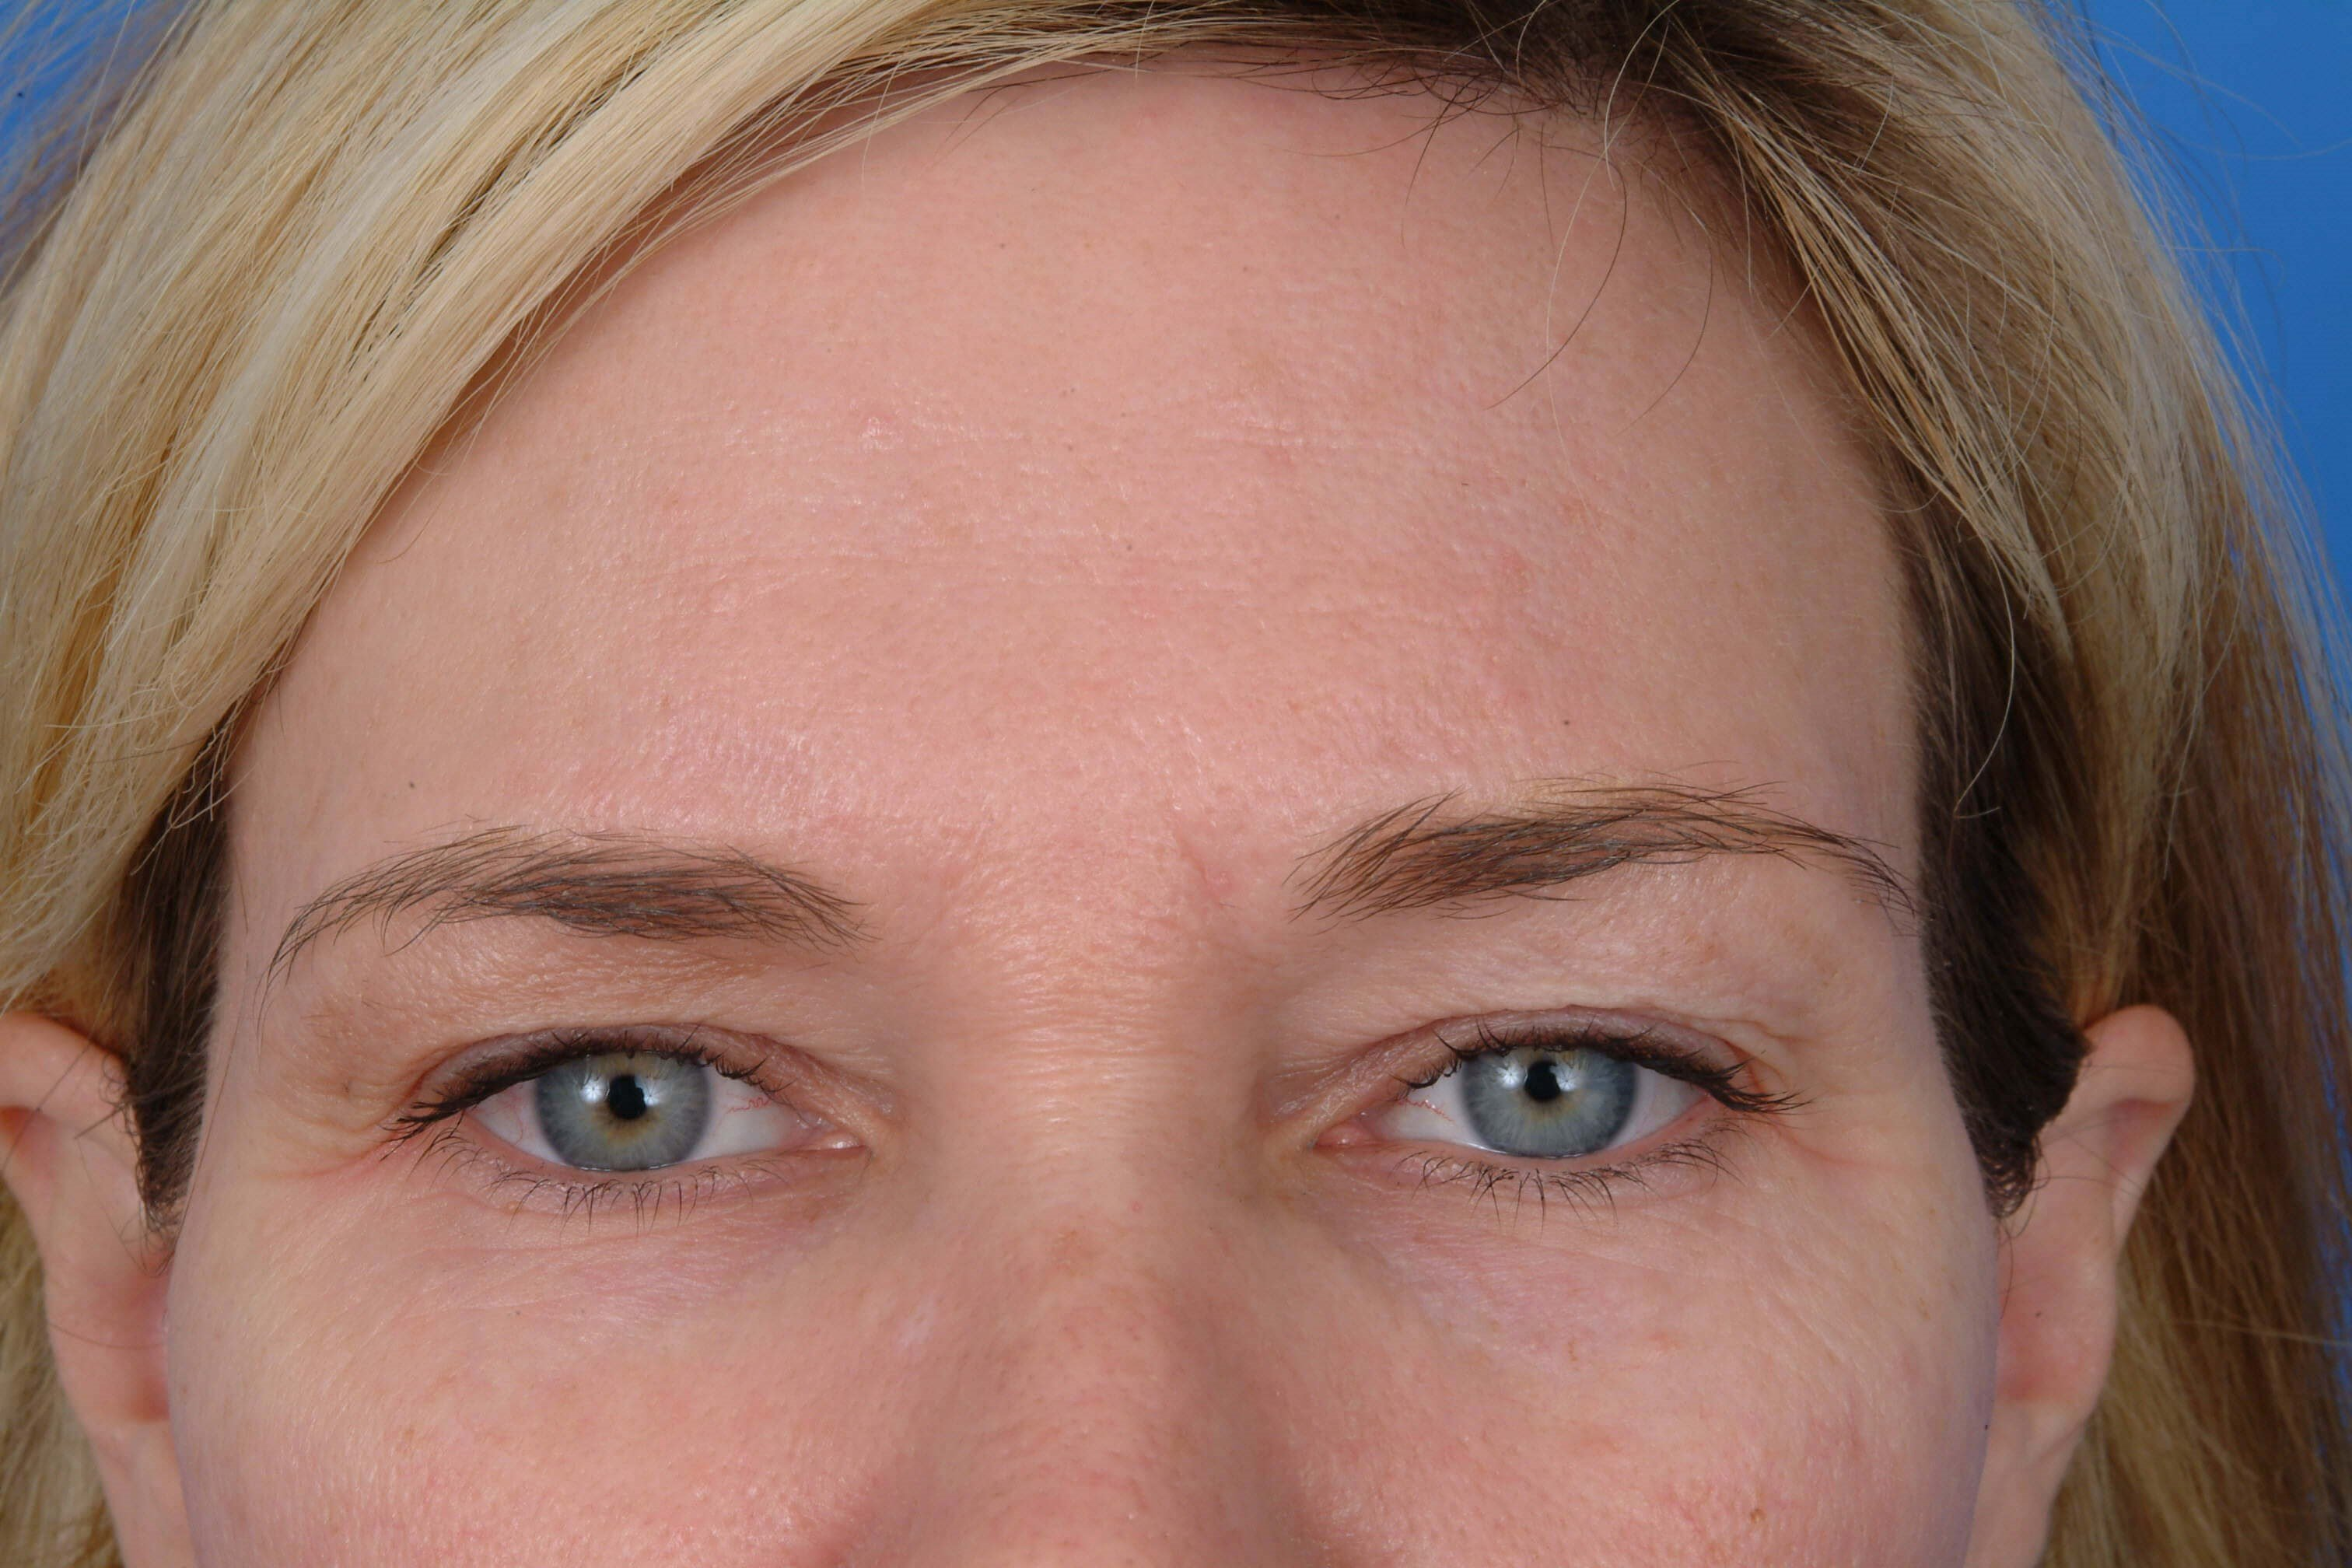 Brow Before Surgery with Dr. Kridel